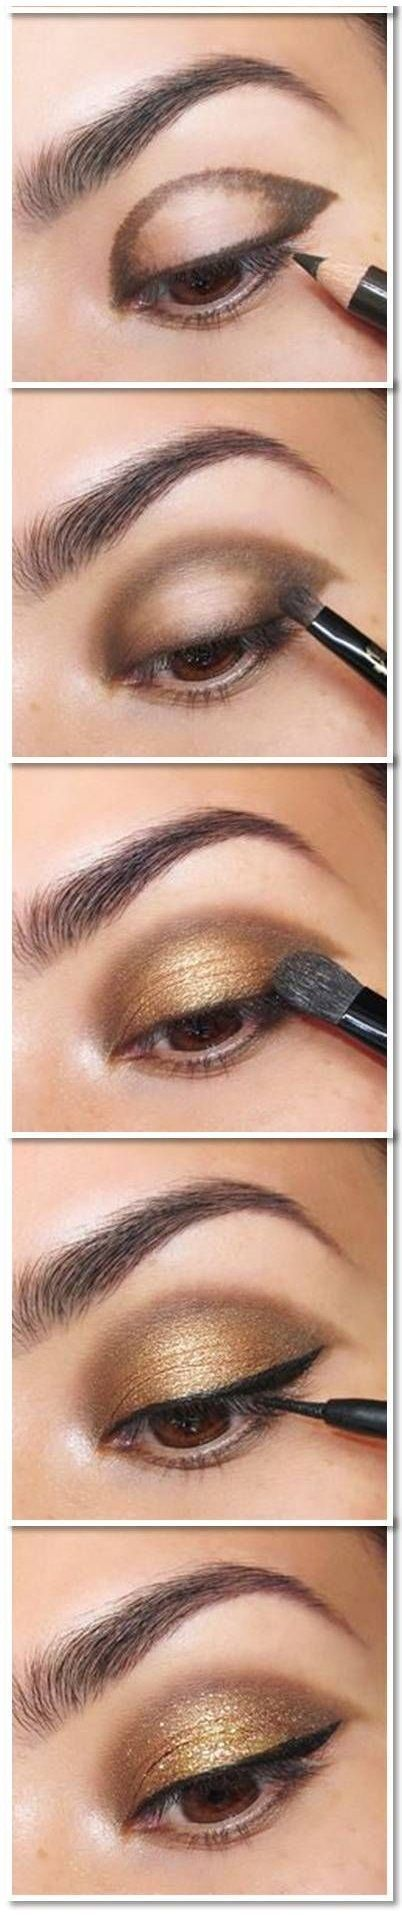 Gold Smokey Eye Makeup Tutorial | 13 Of The Best Eyeshadow Tutorials For Brown Eyes by Makeup Tutorials at http://makeuptutorials.com/13-best-eyeshadow-tutorials-brown-eyes/